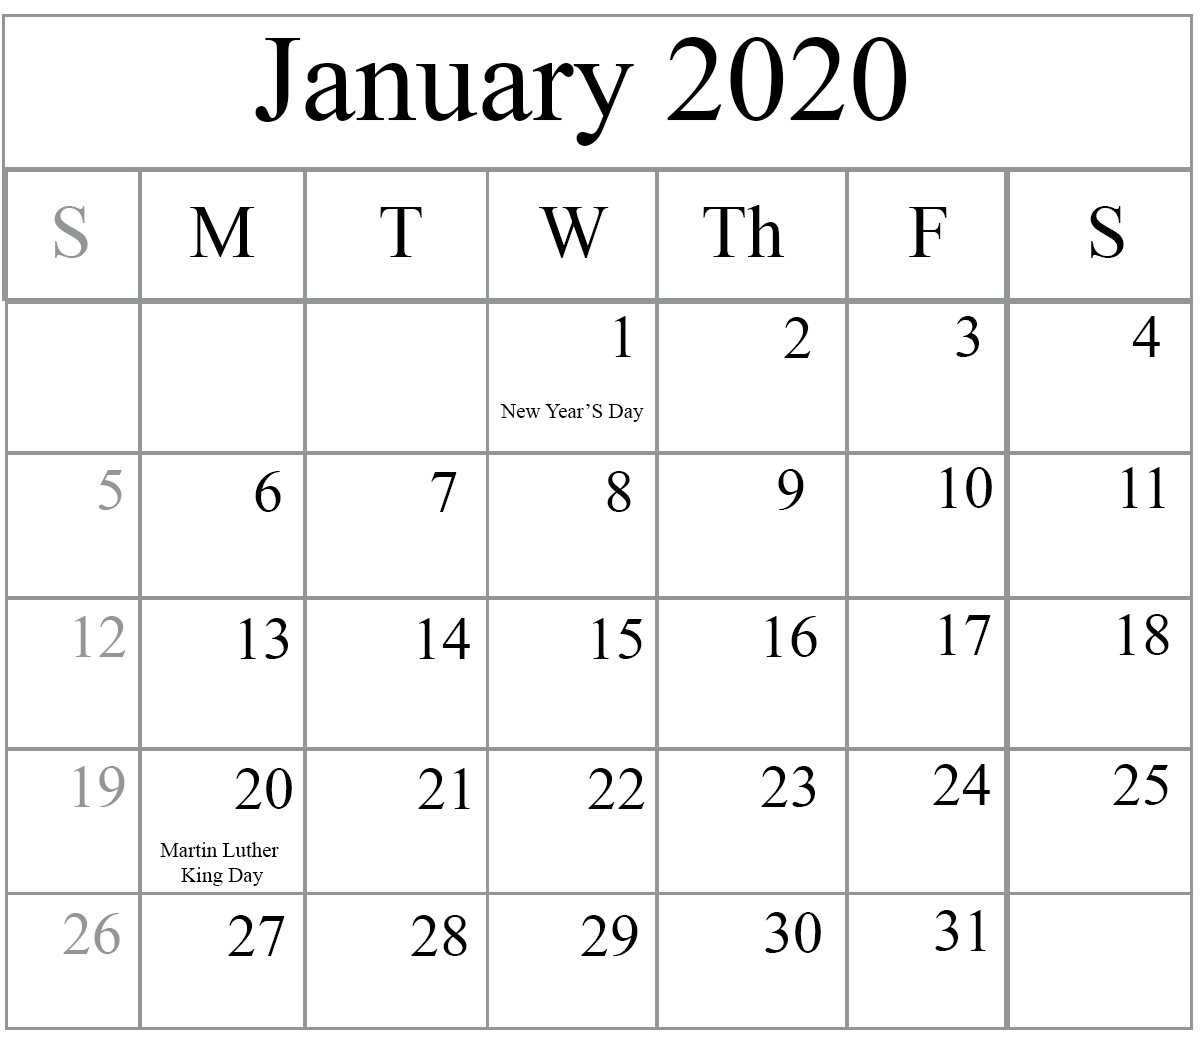 Printable January 2020 Calendar: Free Blank January 2020 Calendar Printable In PDF, Word, Excel